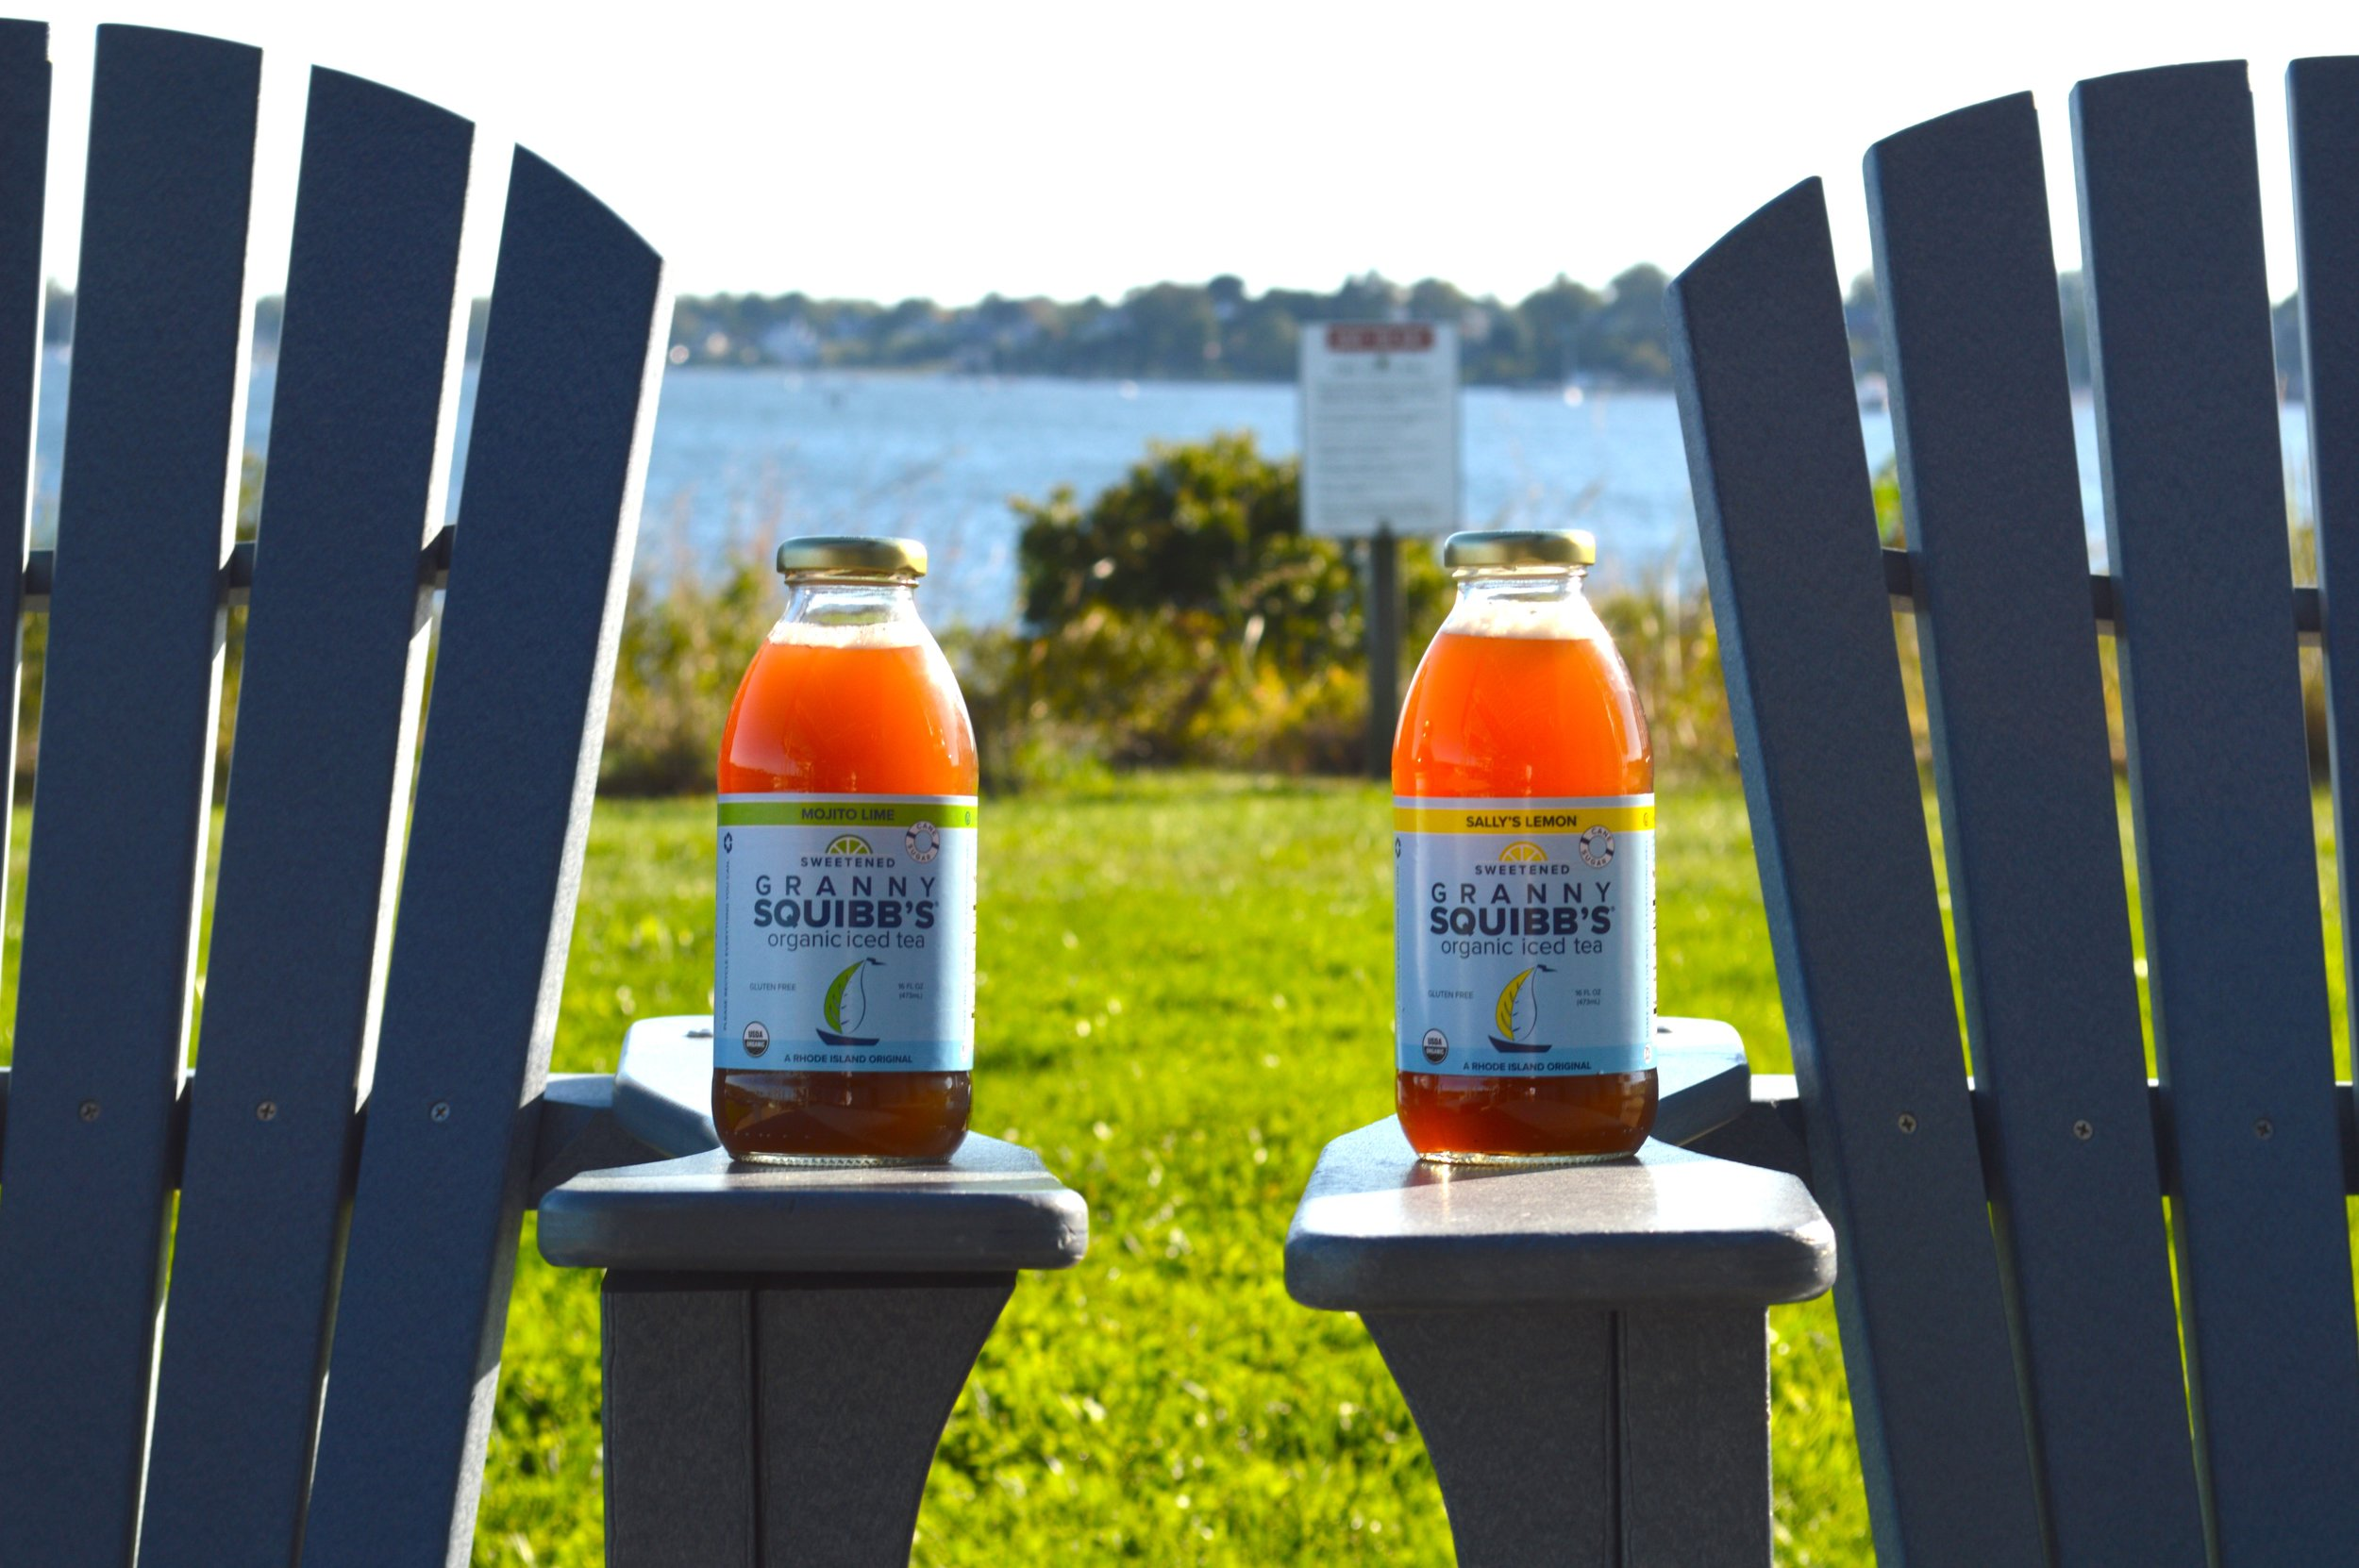 Granny Squibb's Organic Iced Tea at Save The Bay